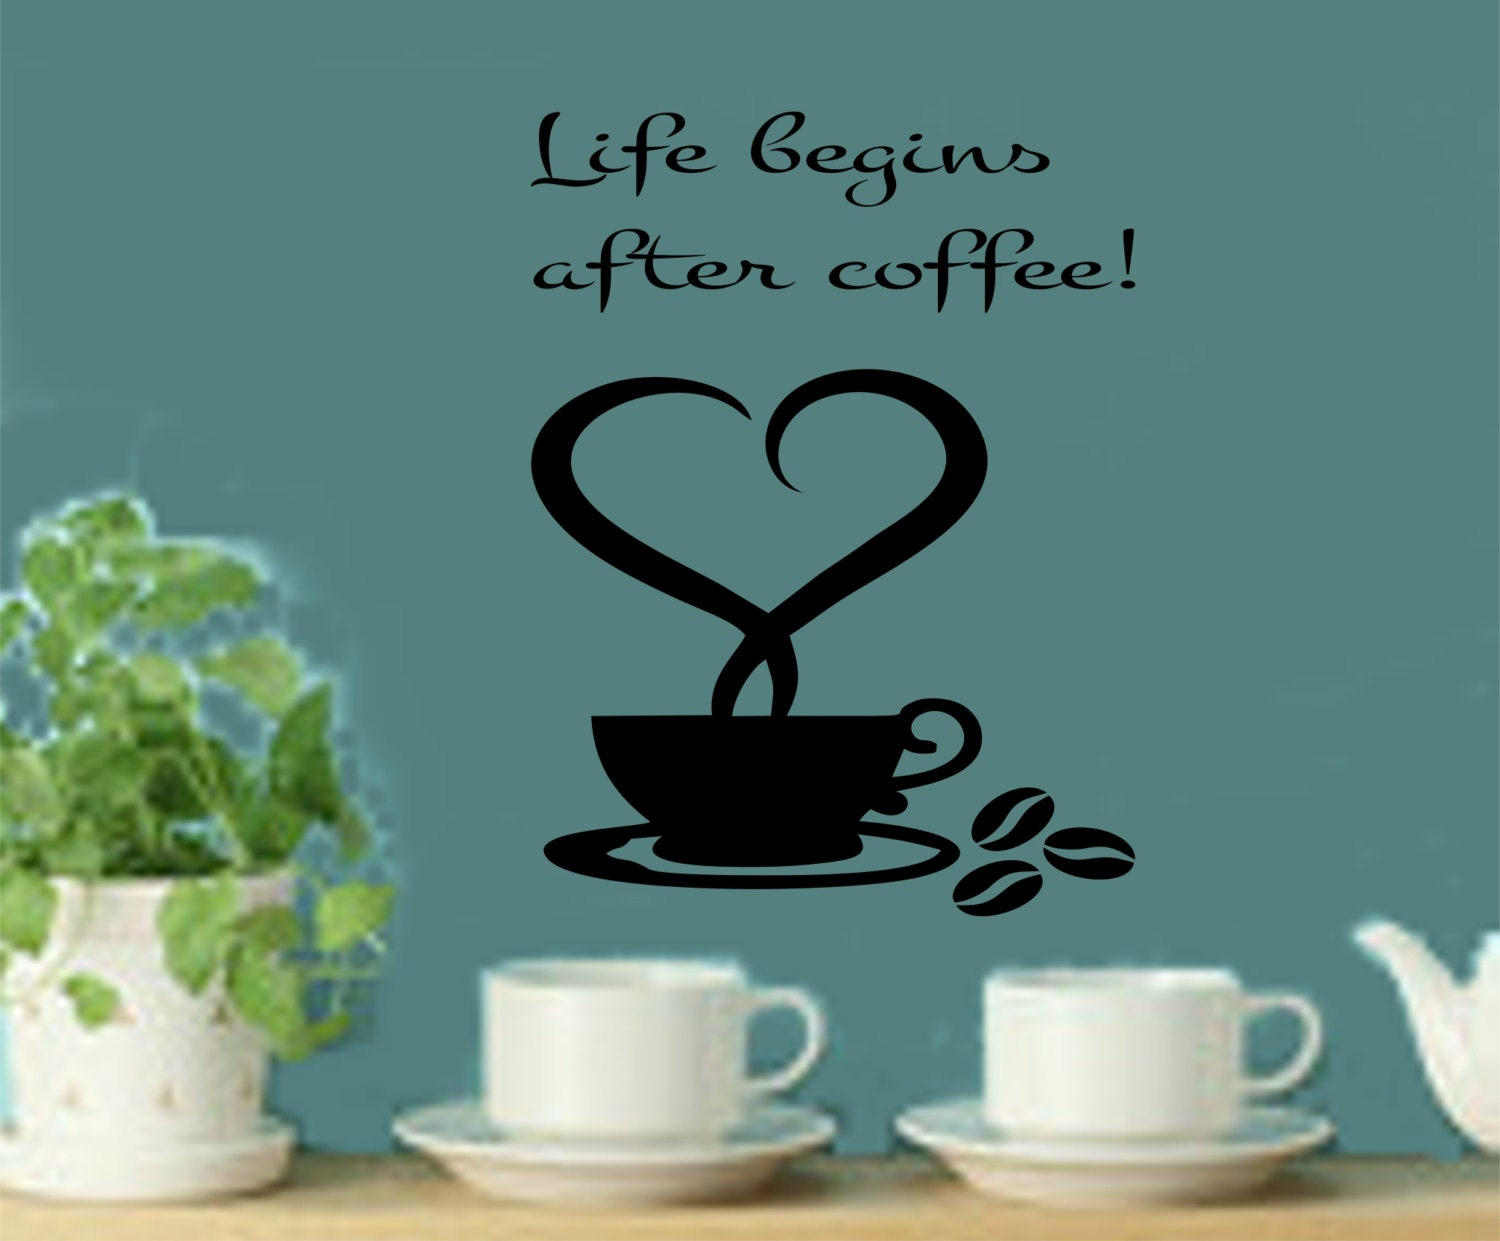 Kitchen Wall Decal   Life Begins After Coffee Kitchen Wall Decal   Kitchen  Decor   Coffee Decal  Coffee Decals  Coffee Wall Decals